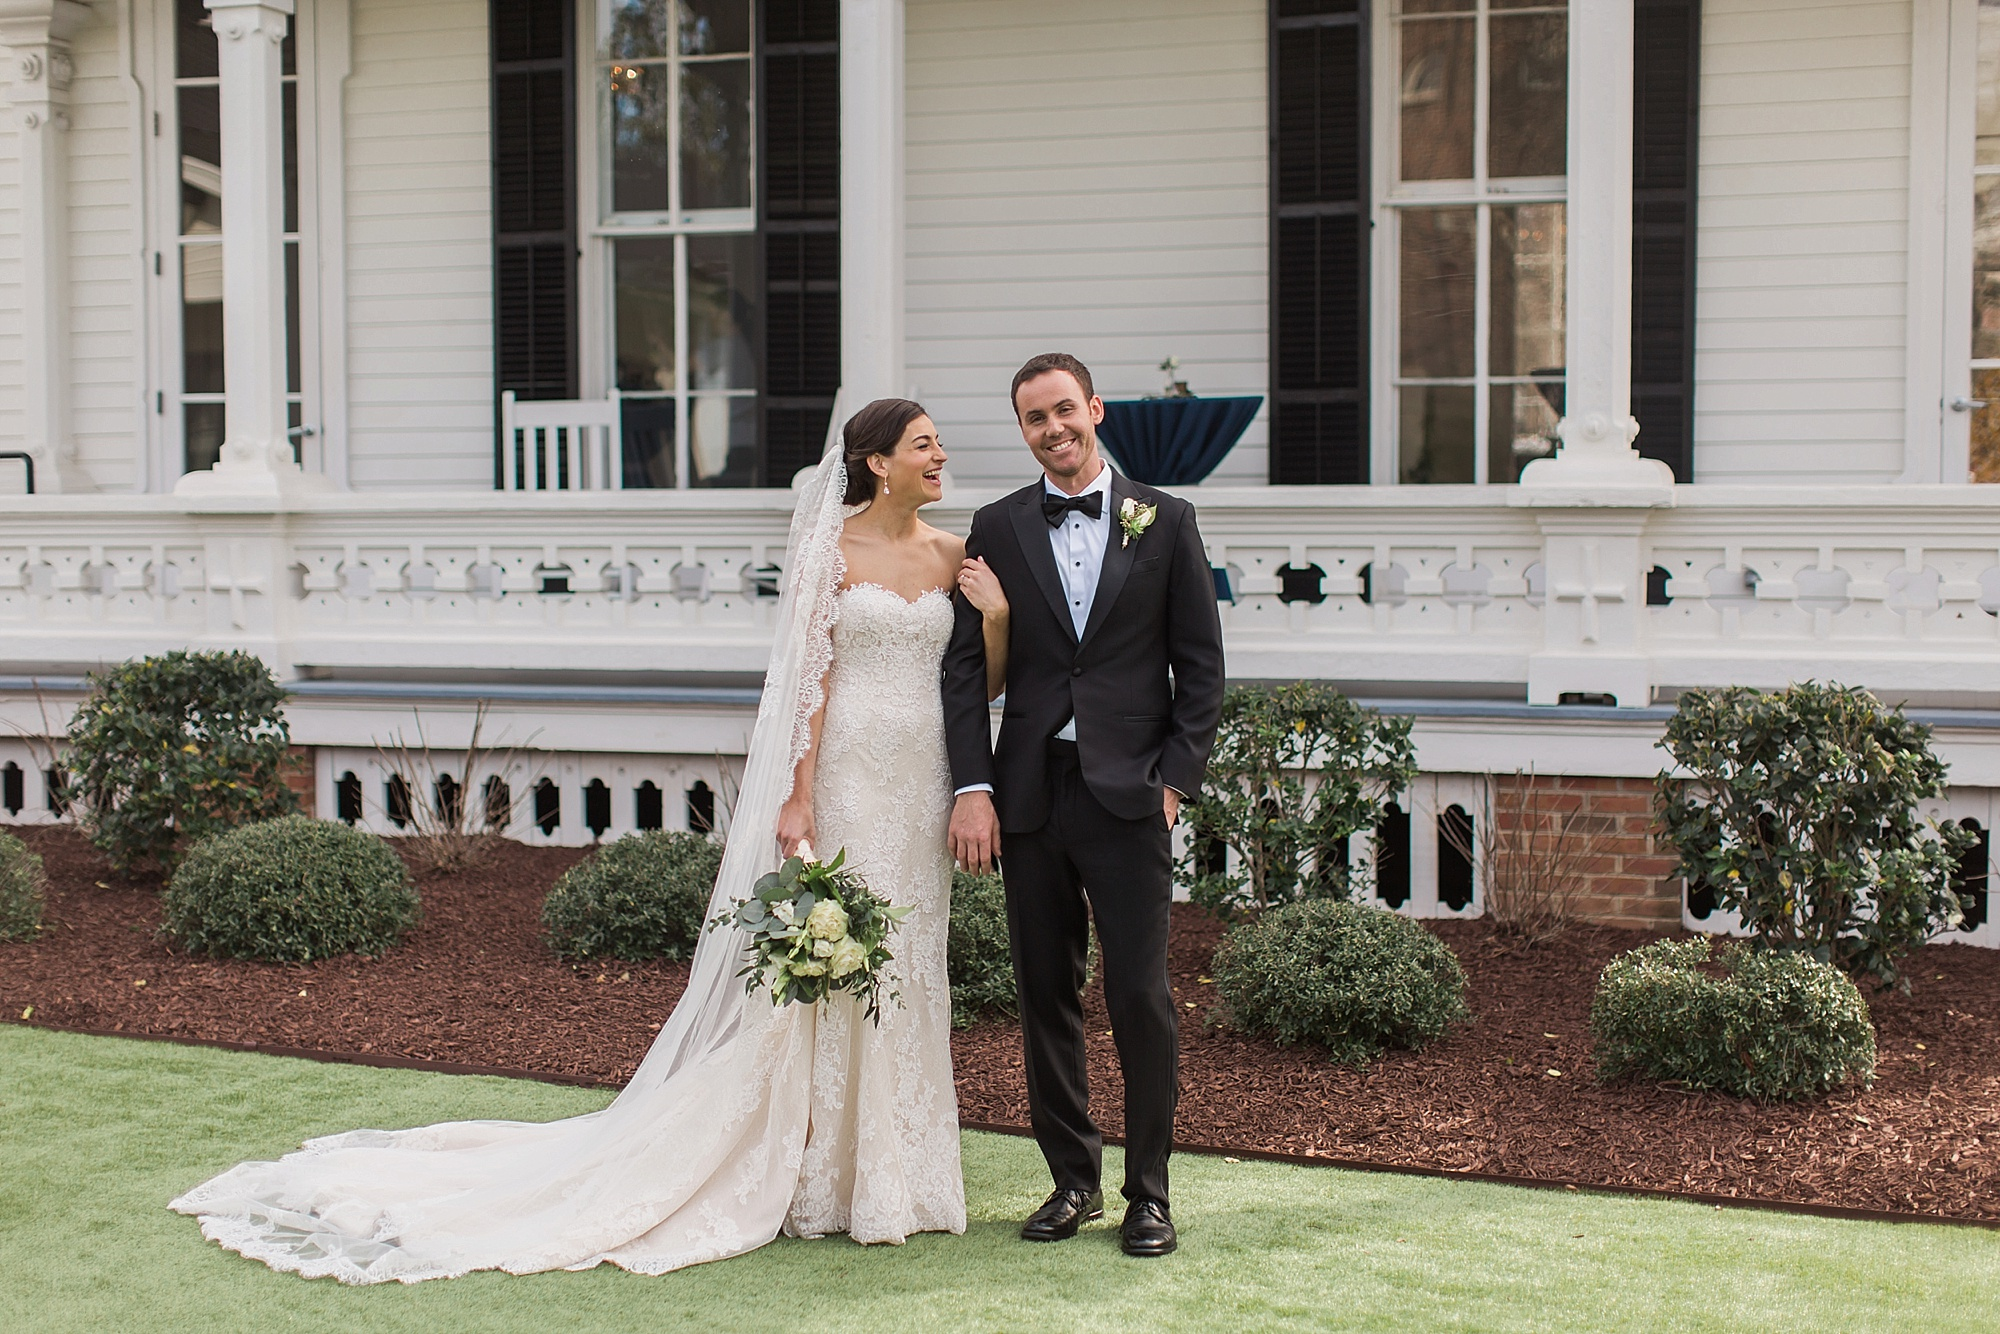 A wedding couple is standing in front of the Merrimon-Wynne House in North Carolina.